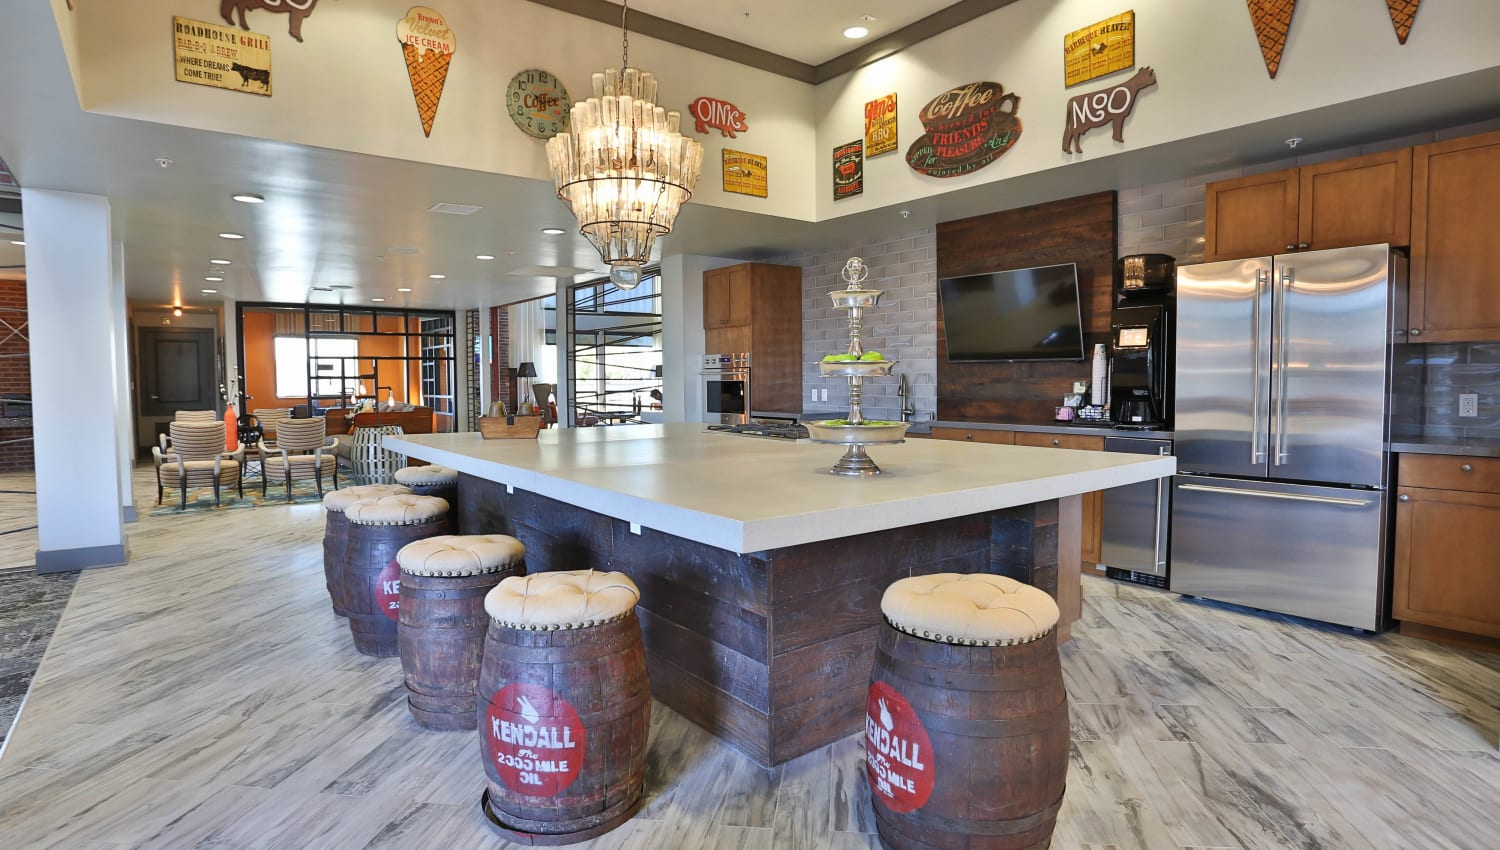 Demonstration kitchen with a large bar-style table in the clubhouse at Olympus Steelyard in Chandler, Arizona